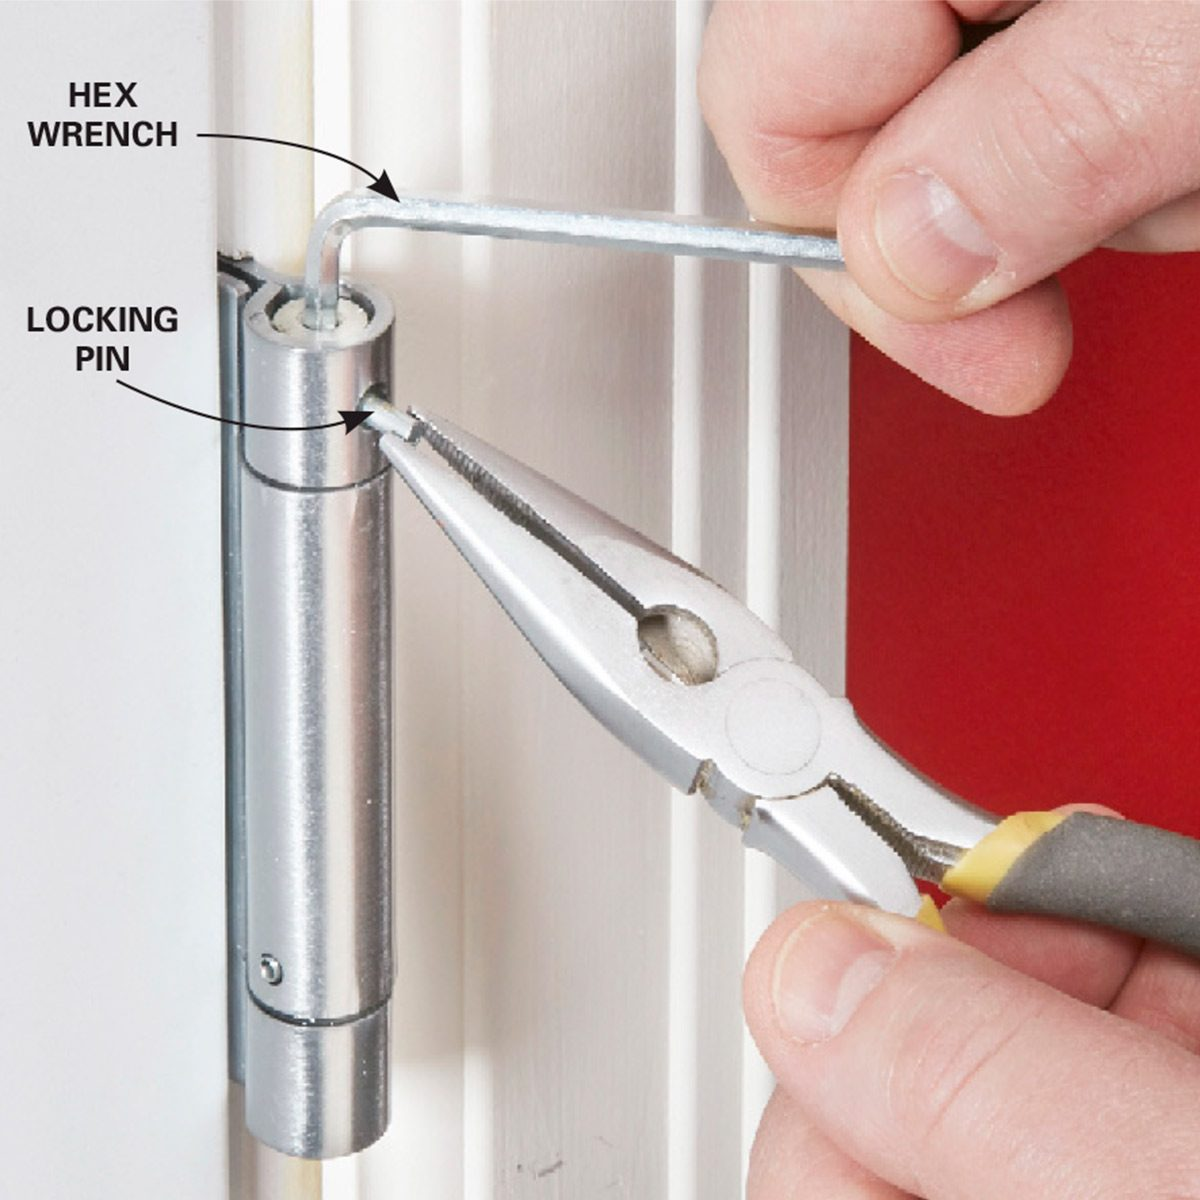 How To Adjust A Self Closing Spring Hinge Yourself